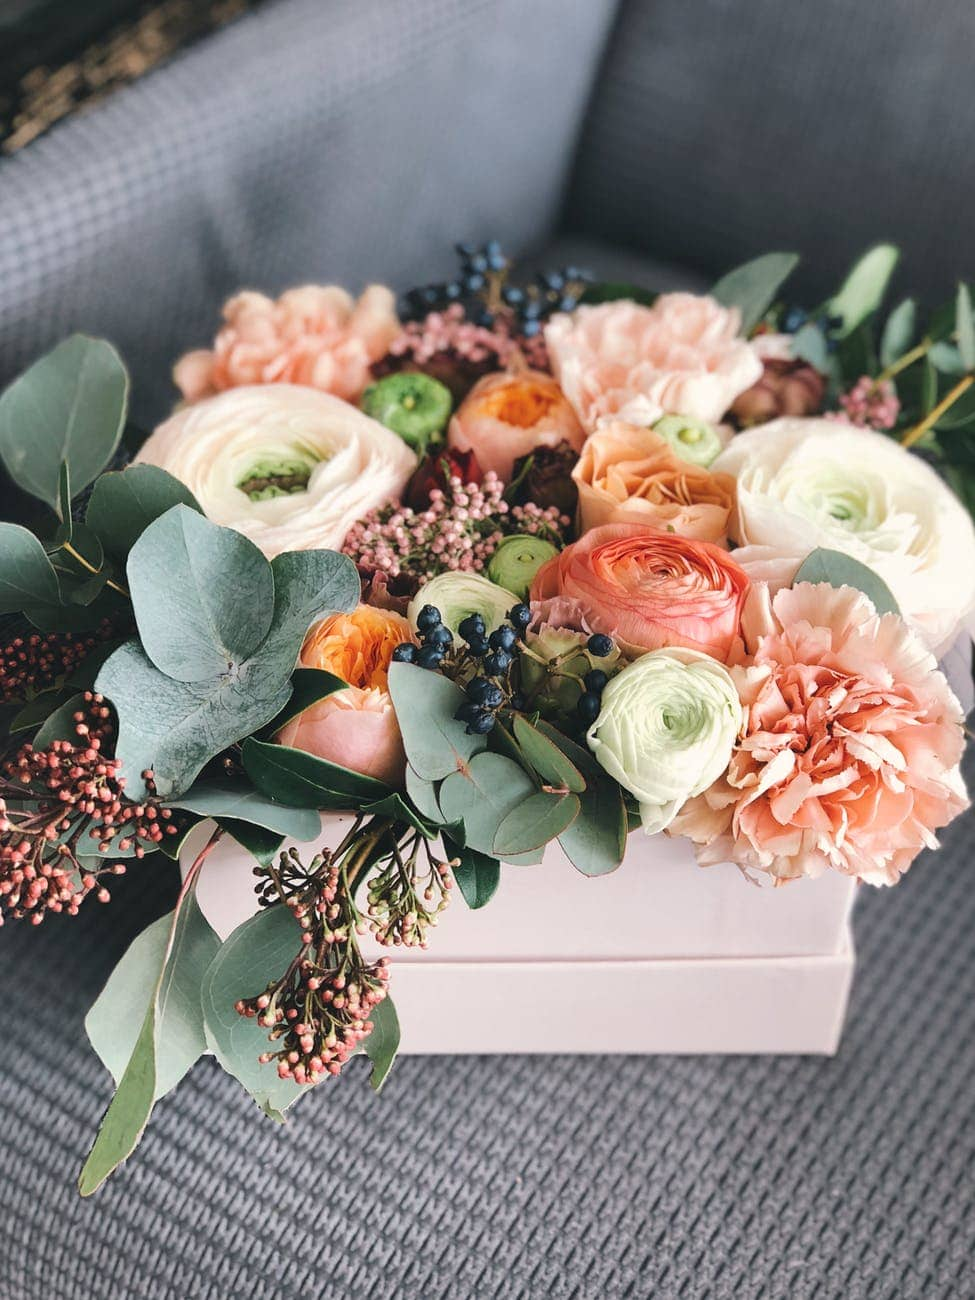 Flowers as a gift